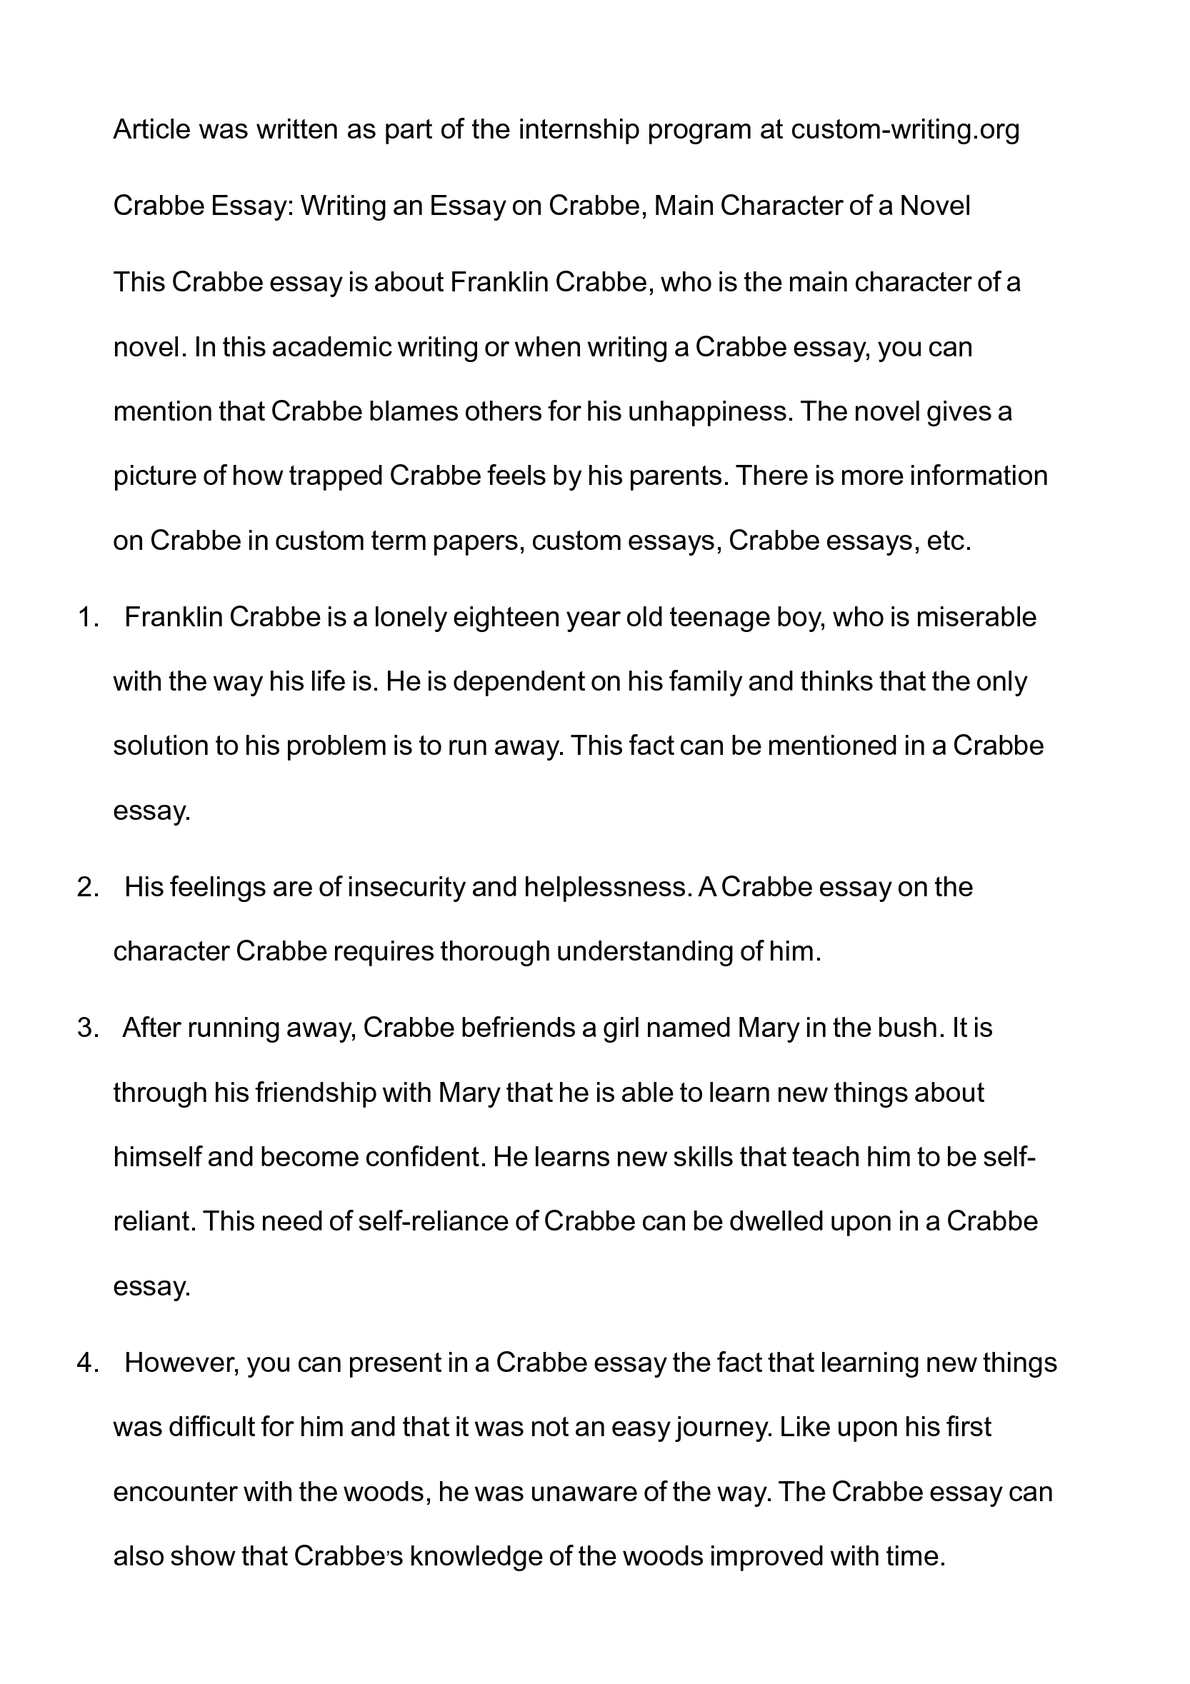 crabbe essay calam atilde copy o crabbe essay writing an essay on crabbe main calamatildecopyo crabbe essay writing an essay on crabbe main character calamatildecopyo crabbe